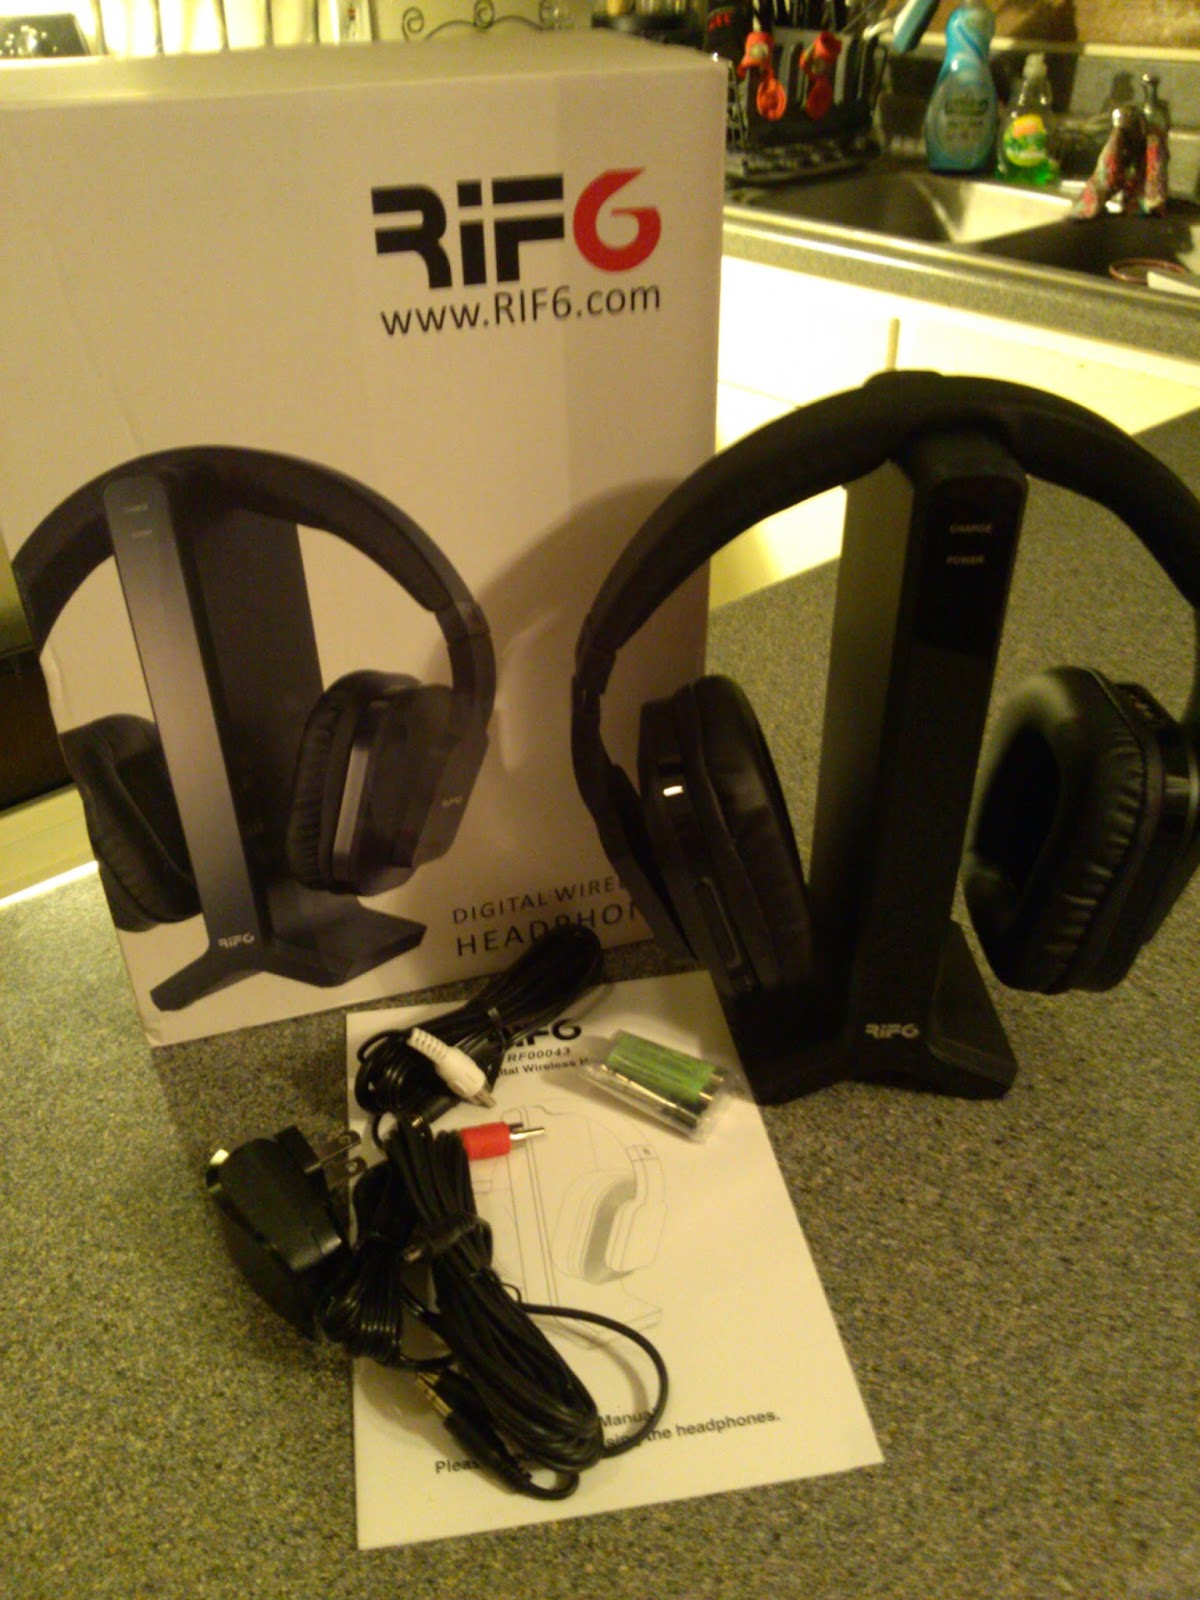 2.4GHz Digital Wireless Headphones Review